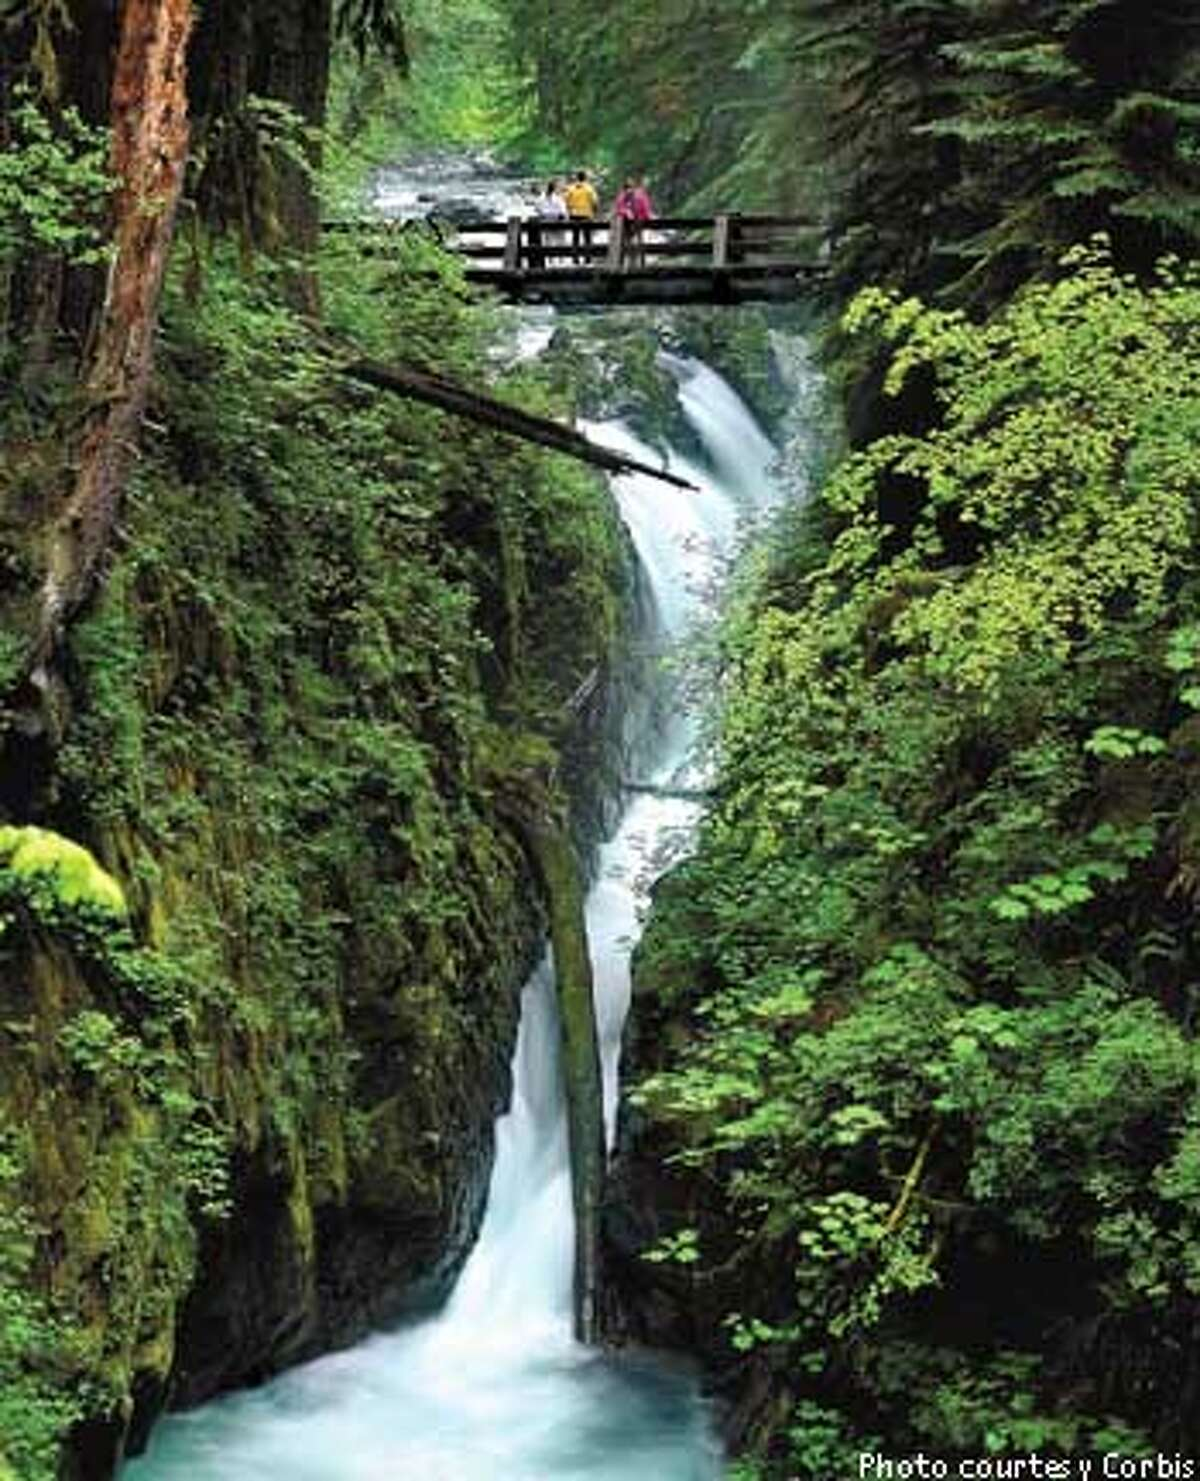 Surrounded by hemlock and Douglas firs, the Sol Duc Falls plummet into a gorge crossed by one of the many trails through the park's old-growth forests. Photo courtesy of Corbis